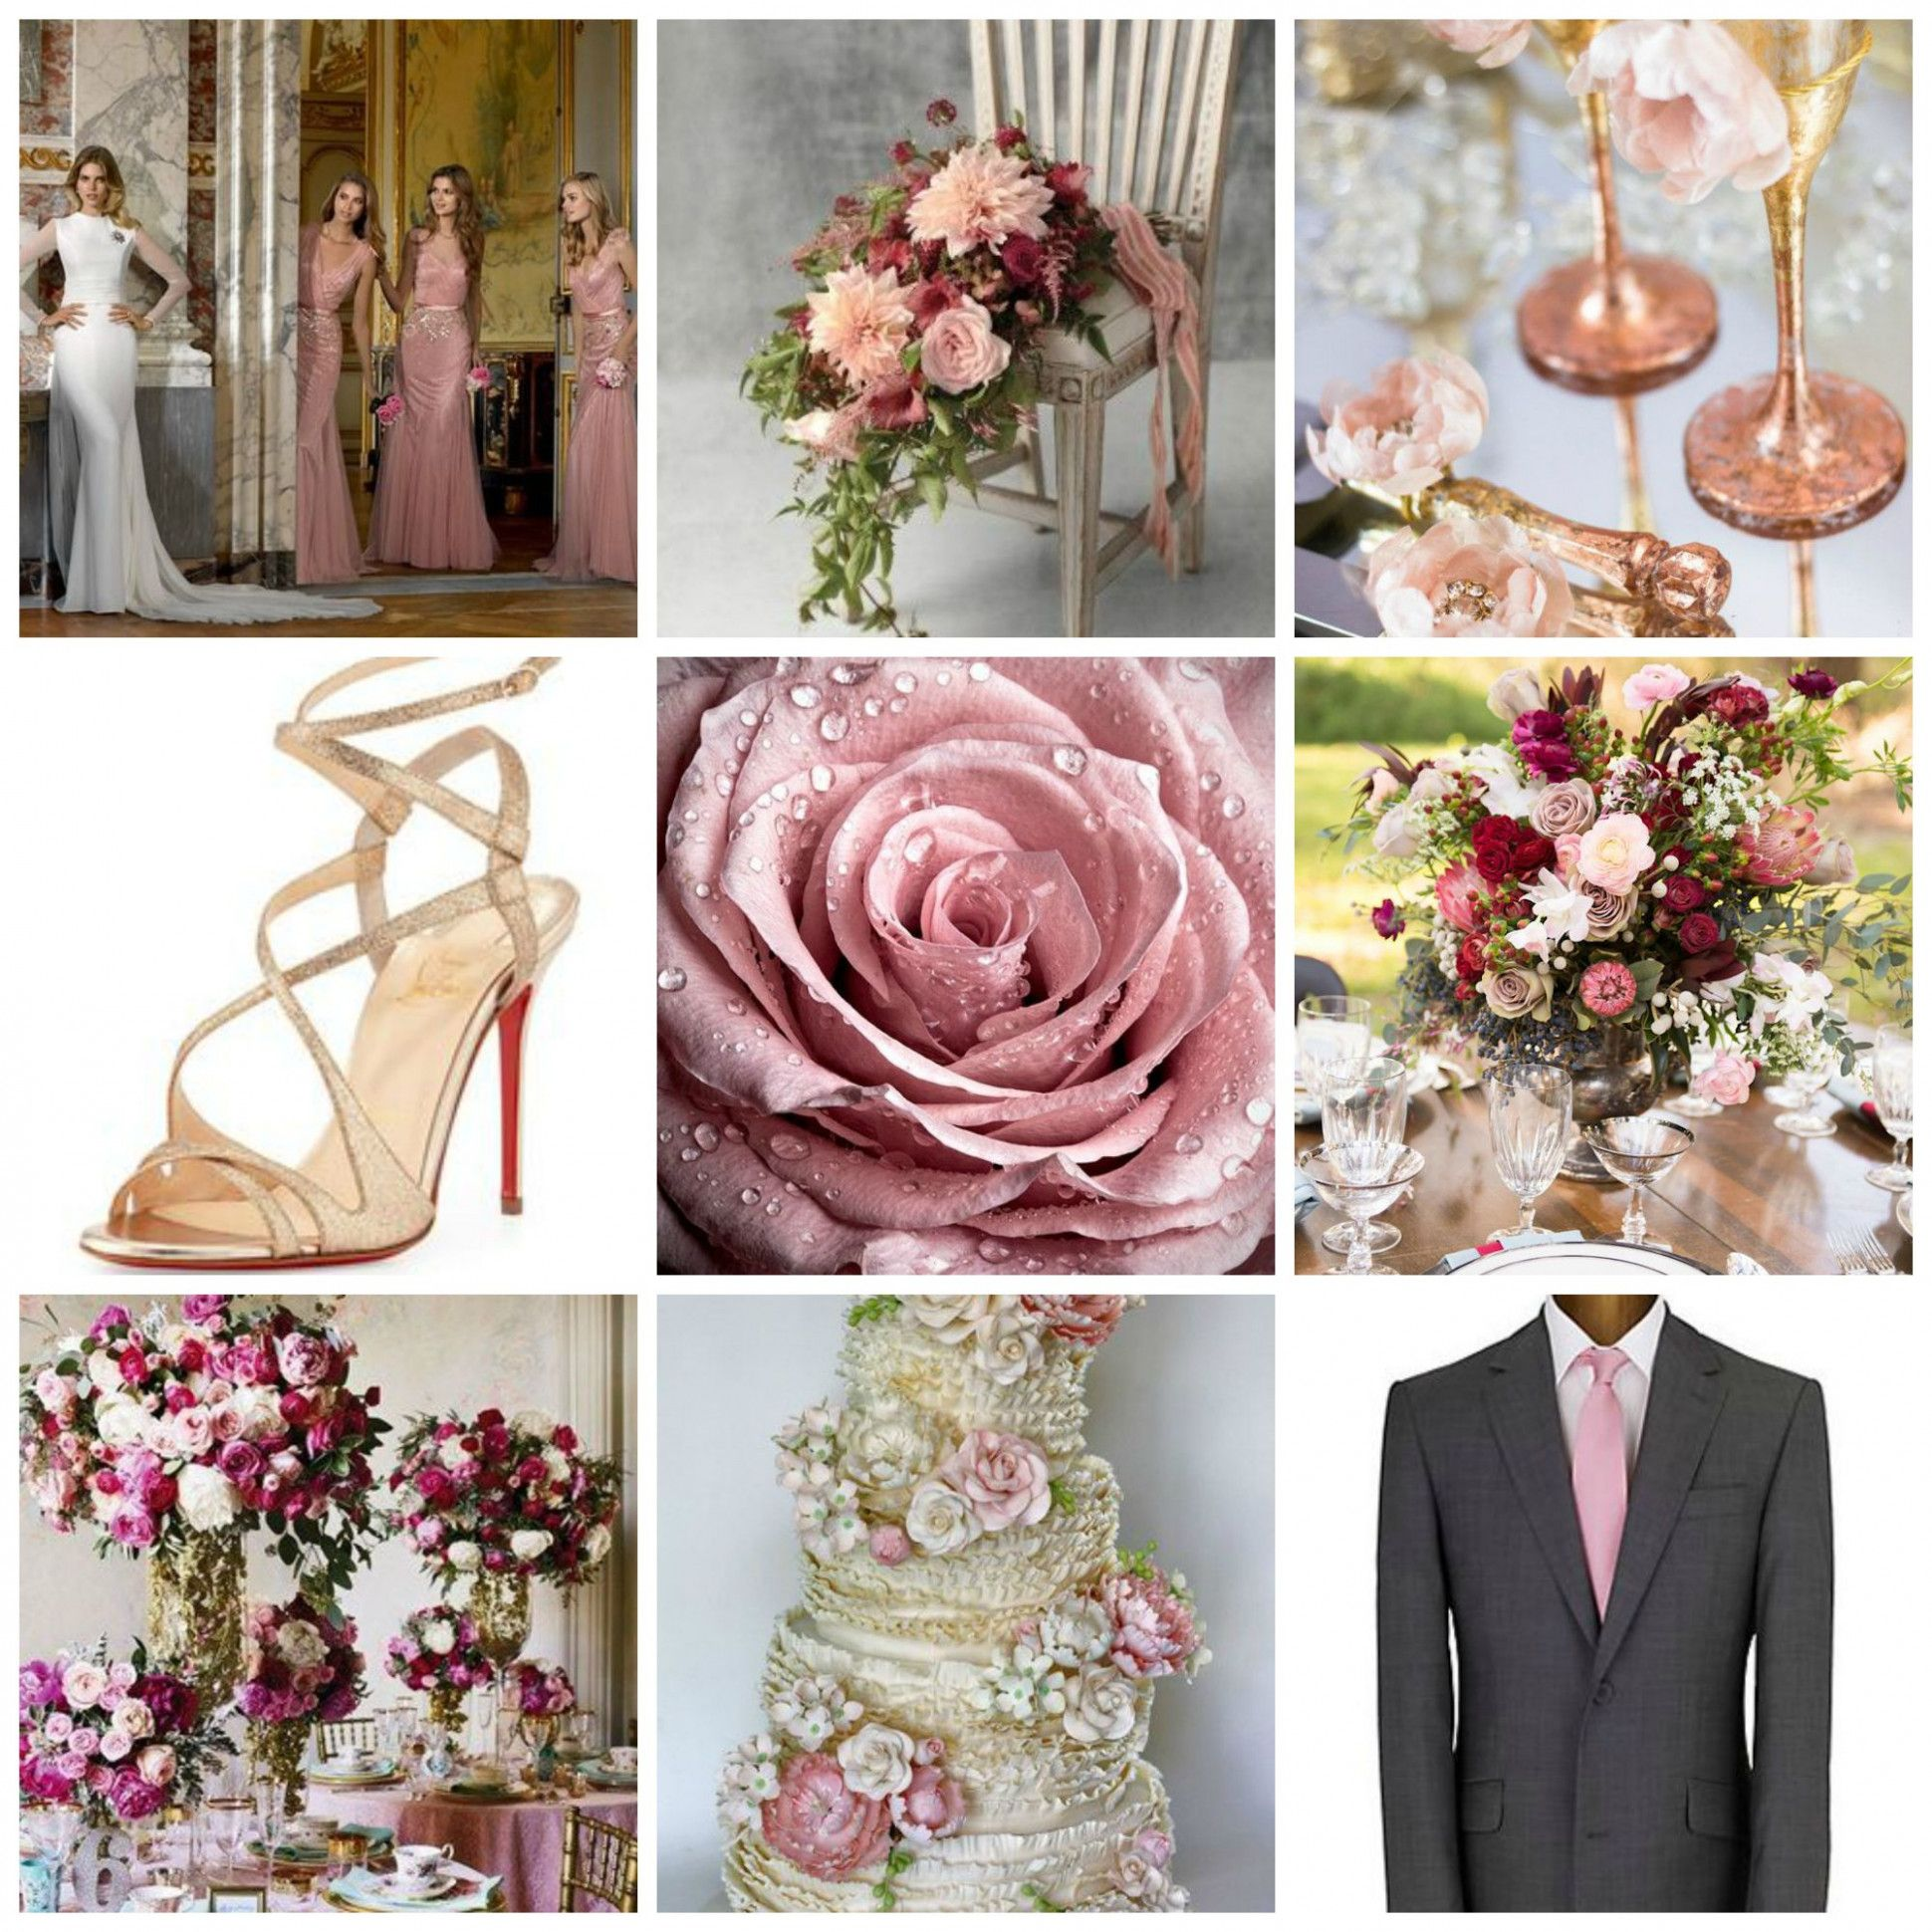 Wedding Color Themes For August August Wedding Colors Summer The Shocking Revelation Of August Weddi Wedding Theme Colors Summer Wedding Colors Wedding Colors